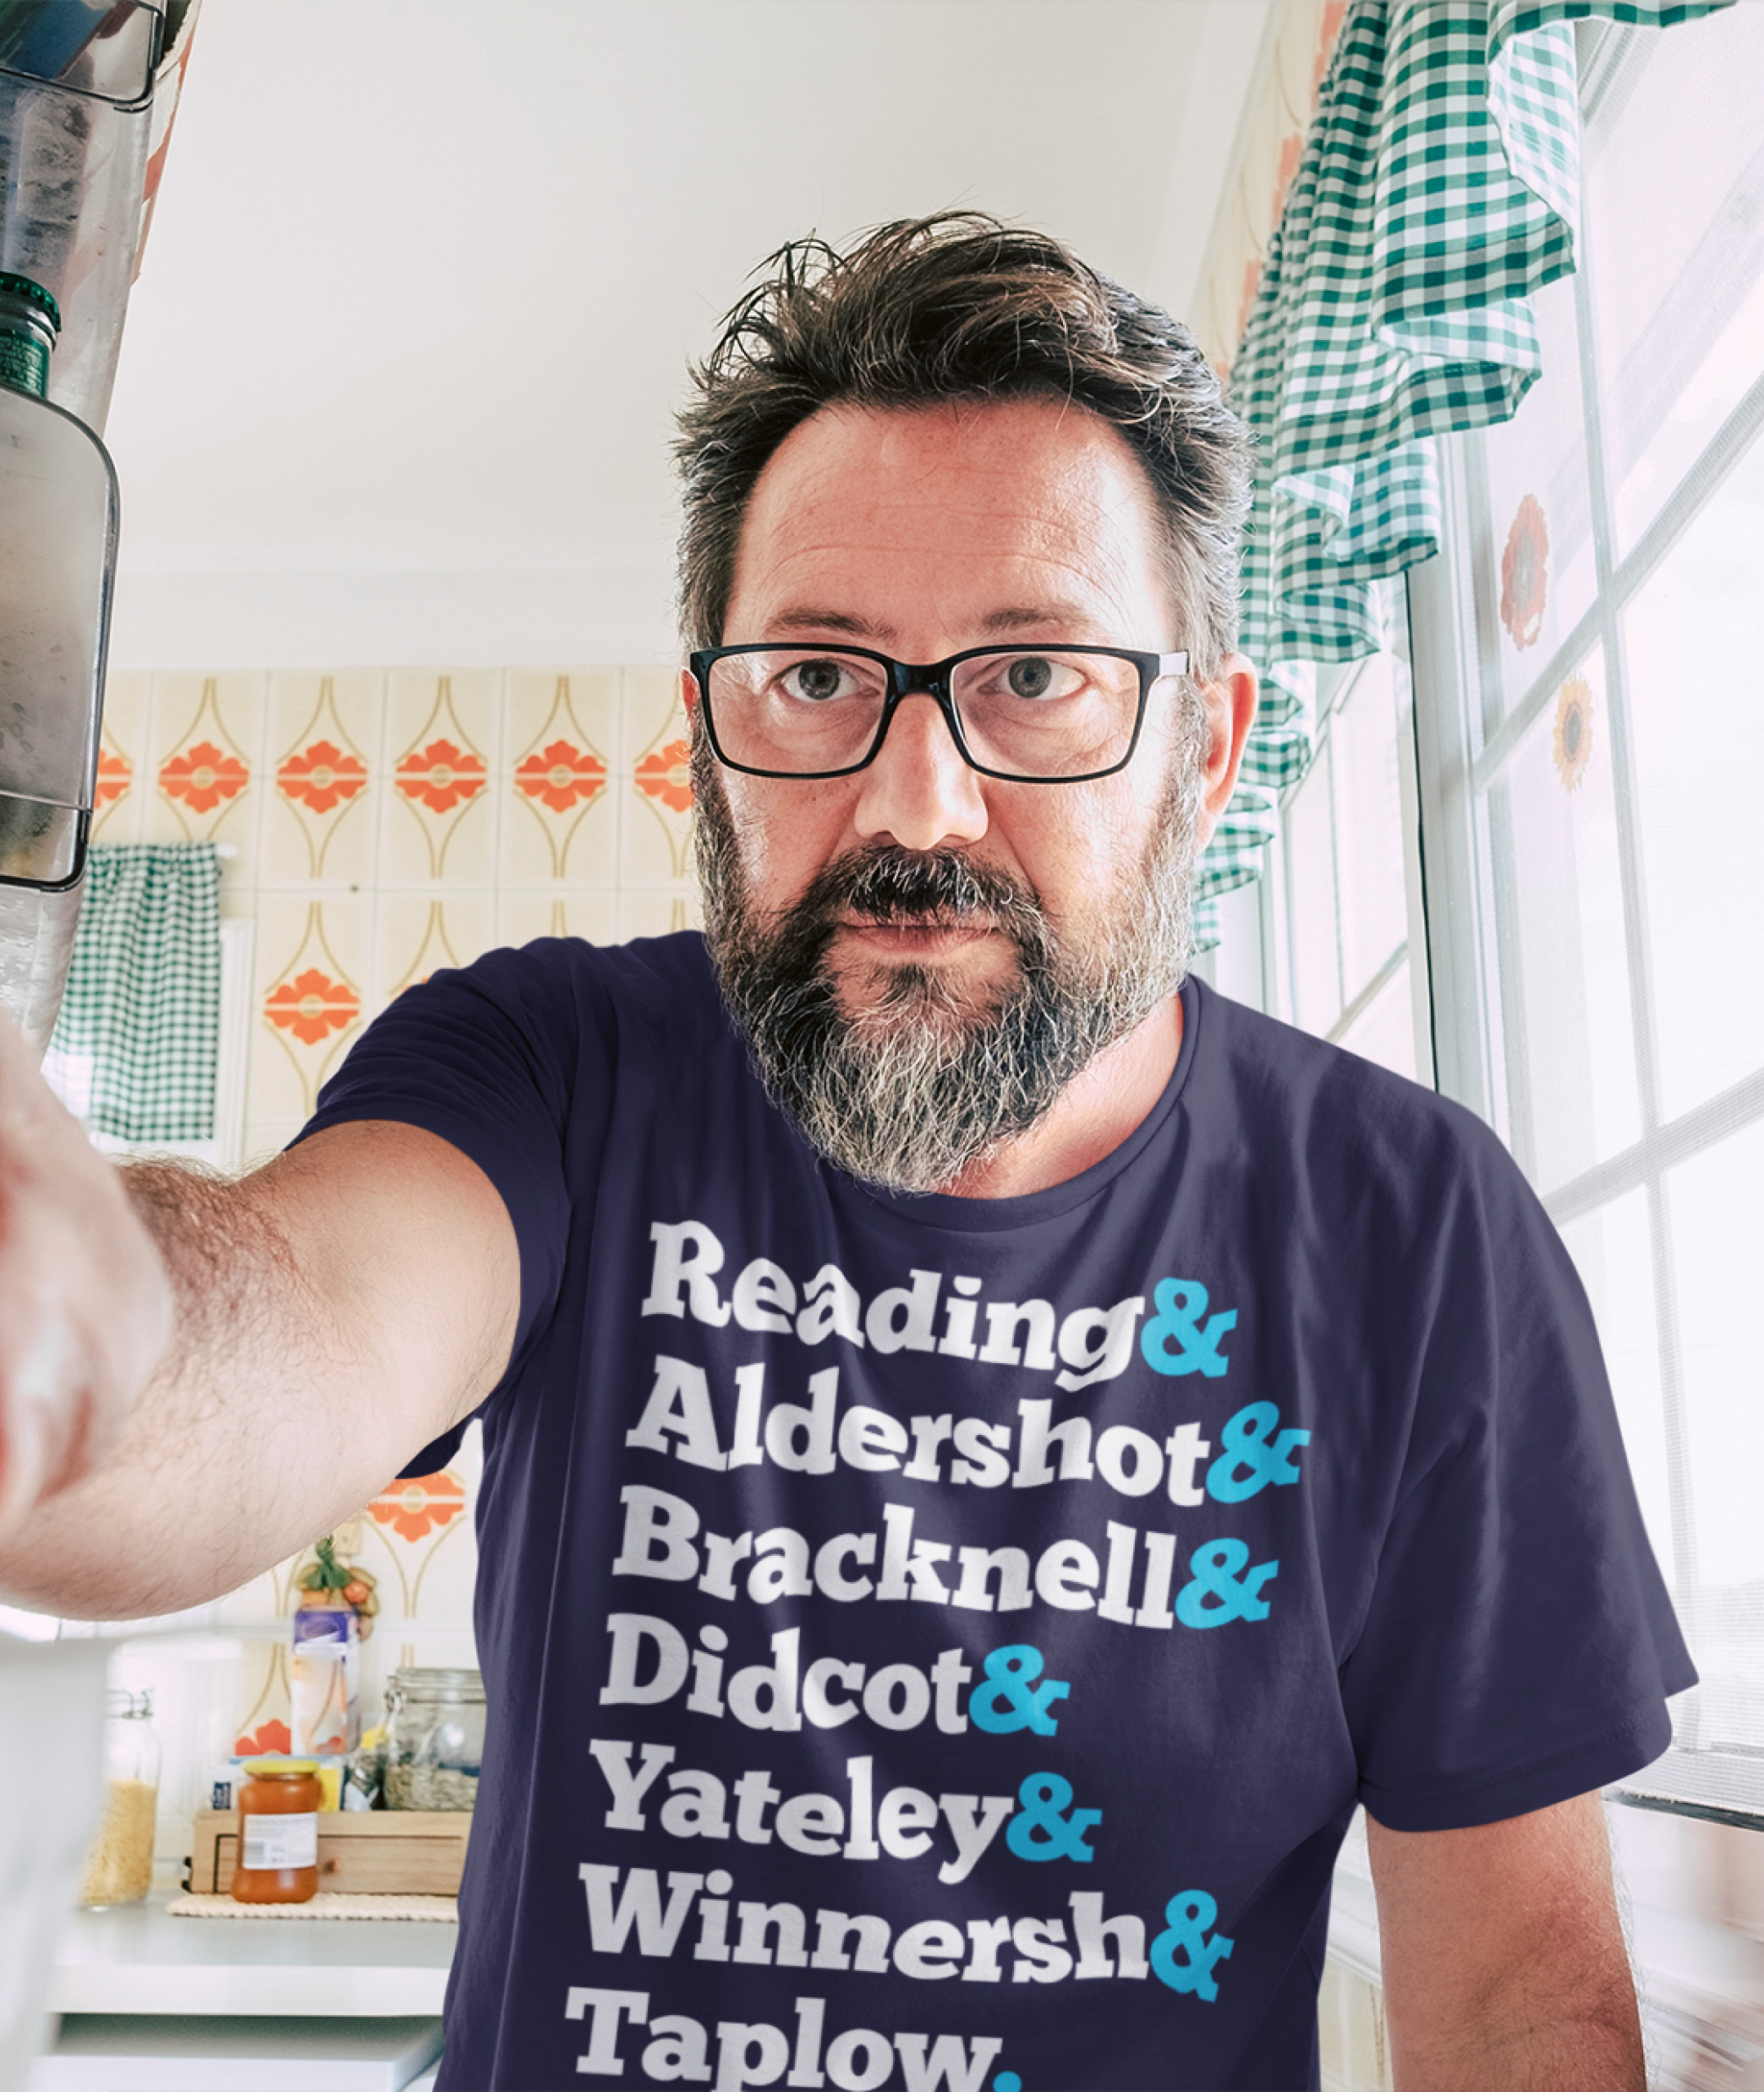 Man with Beard Wearing The OffIce Navy Ampersand T Shirt